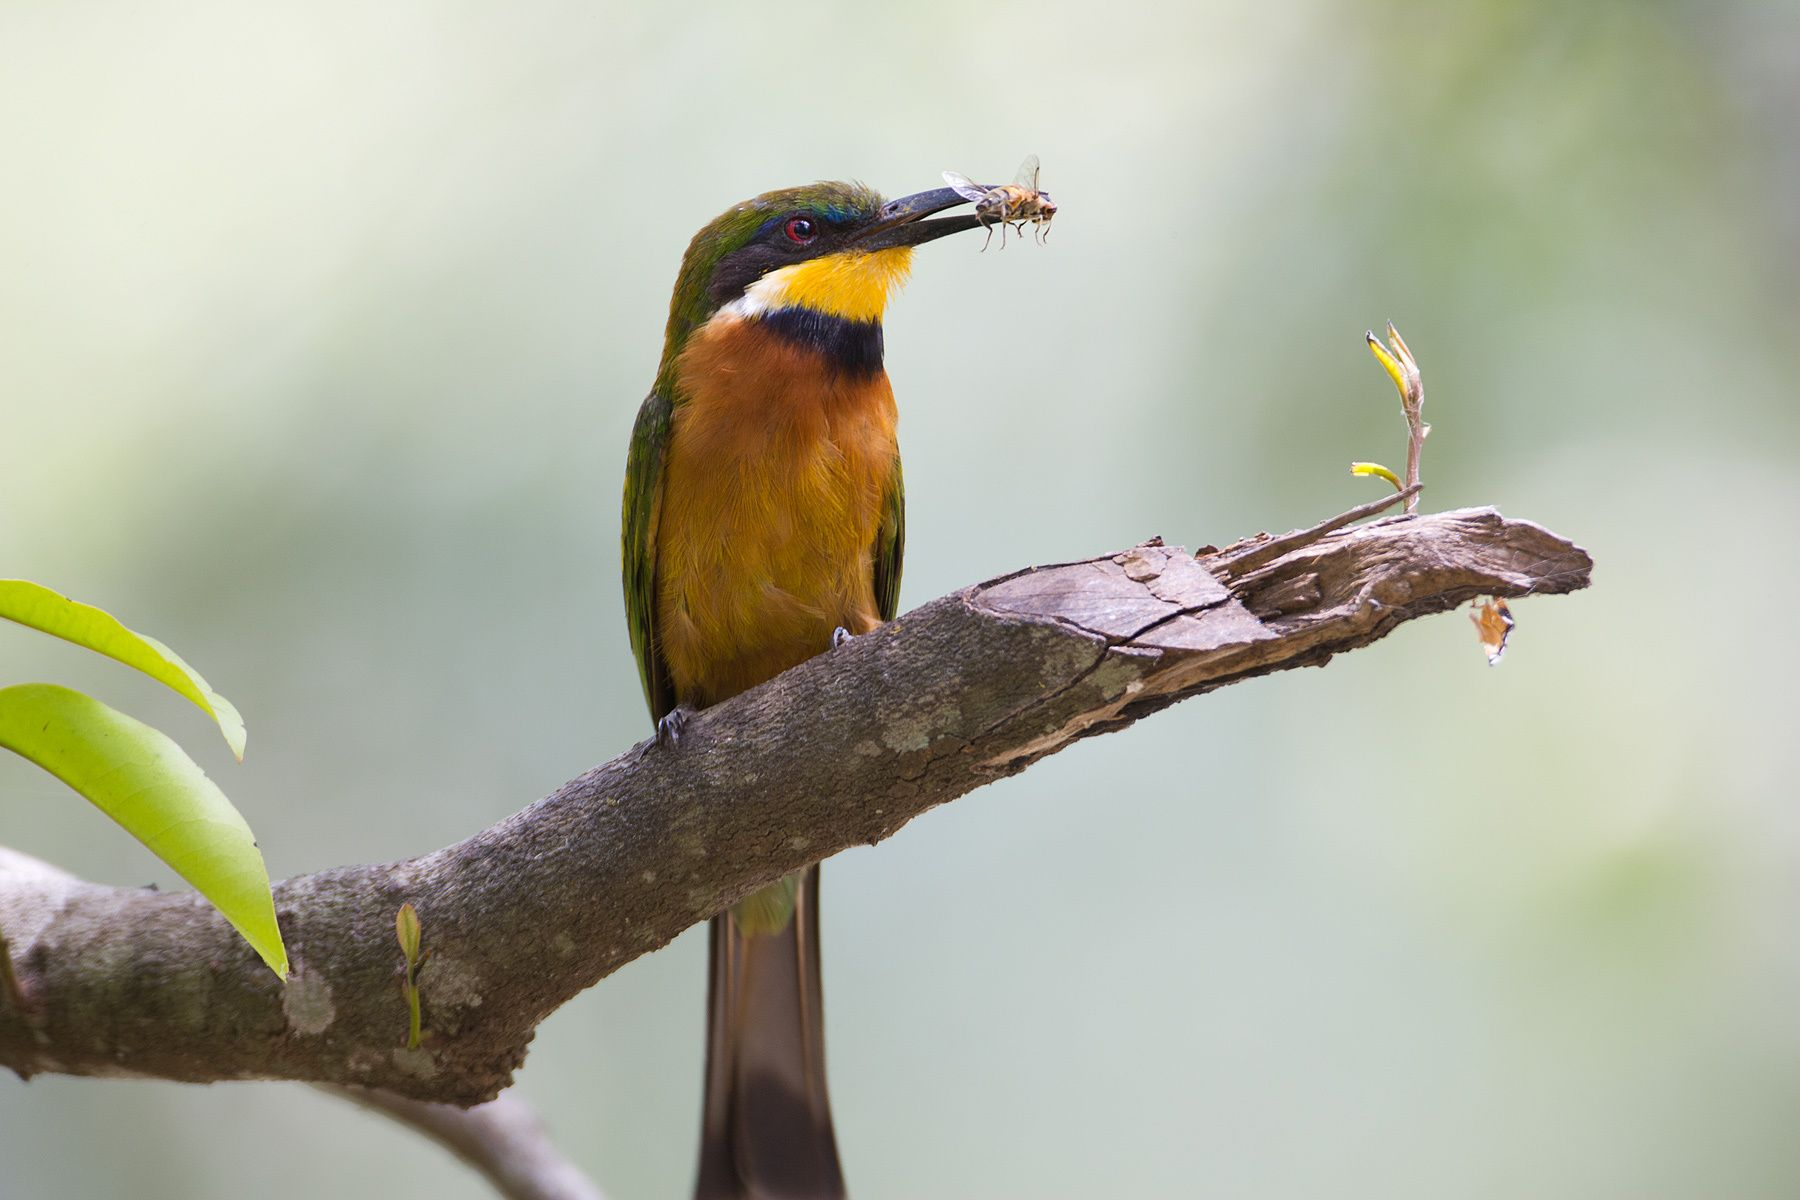 1bee_eater